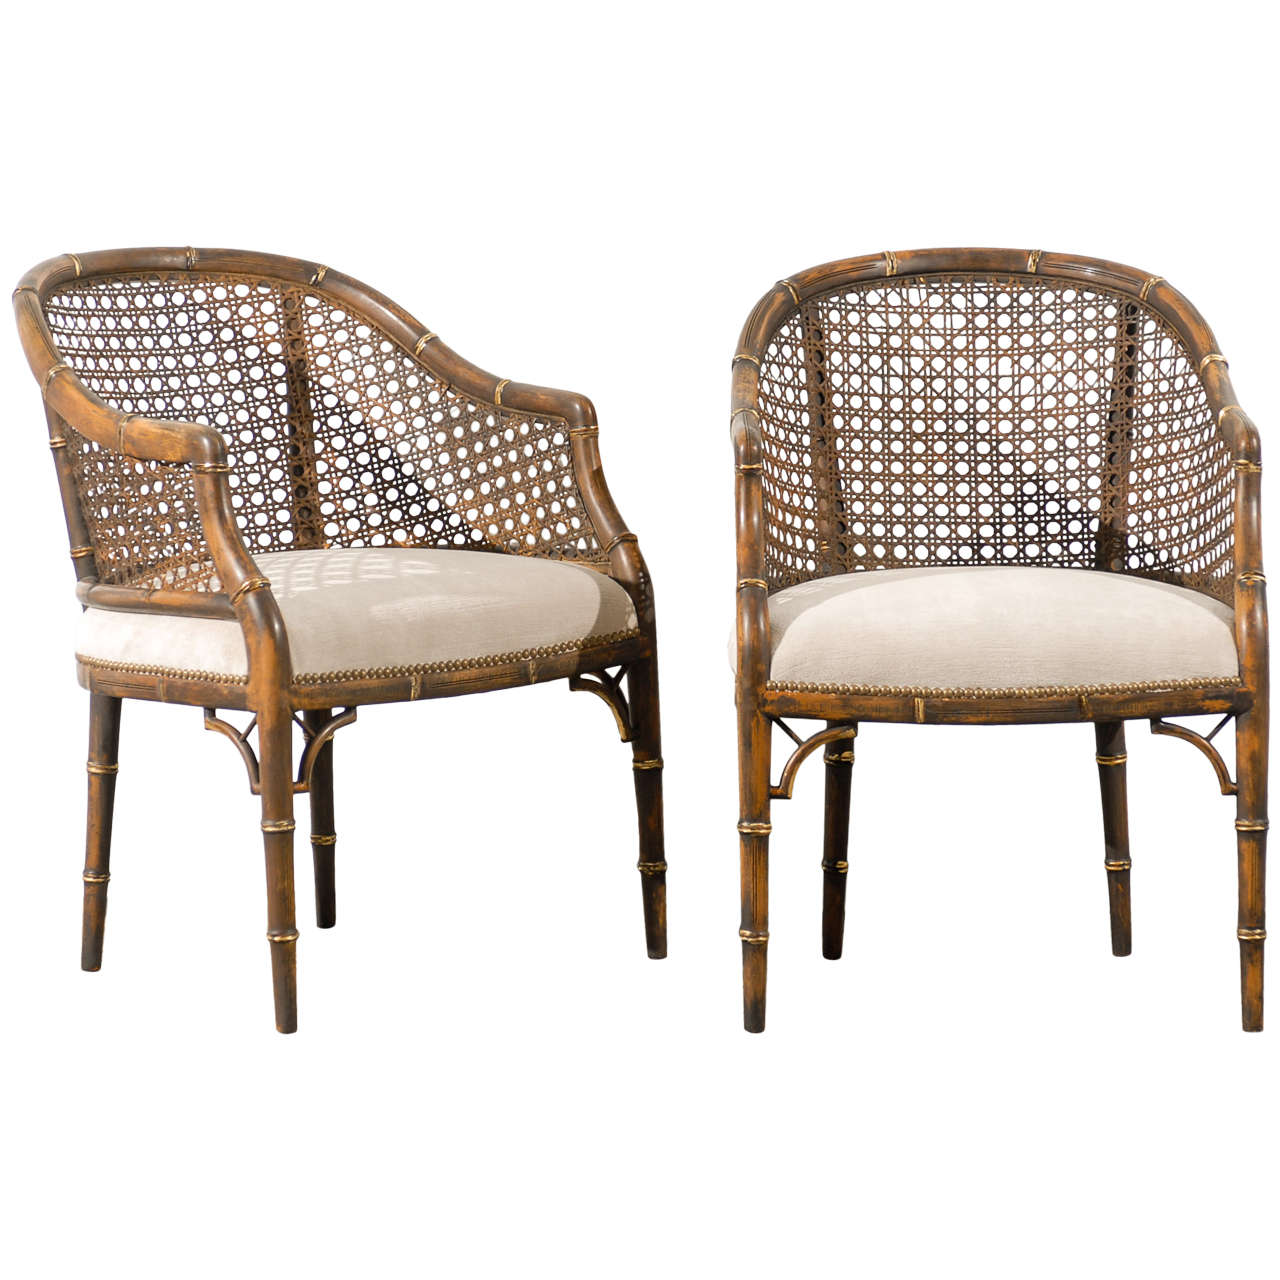 Vintage Cane Back Chairs Beautiful Vintage Faux Bamboo Cane Barrel Back Chairs 4